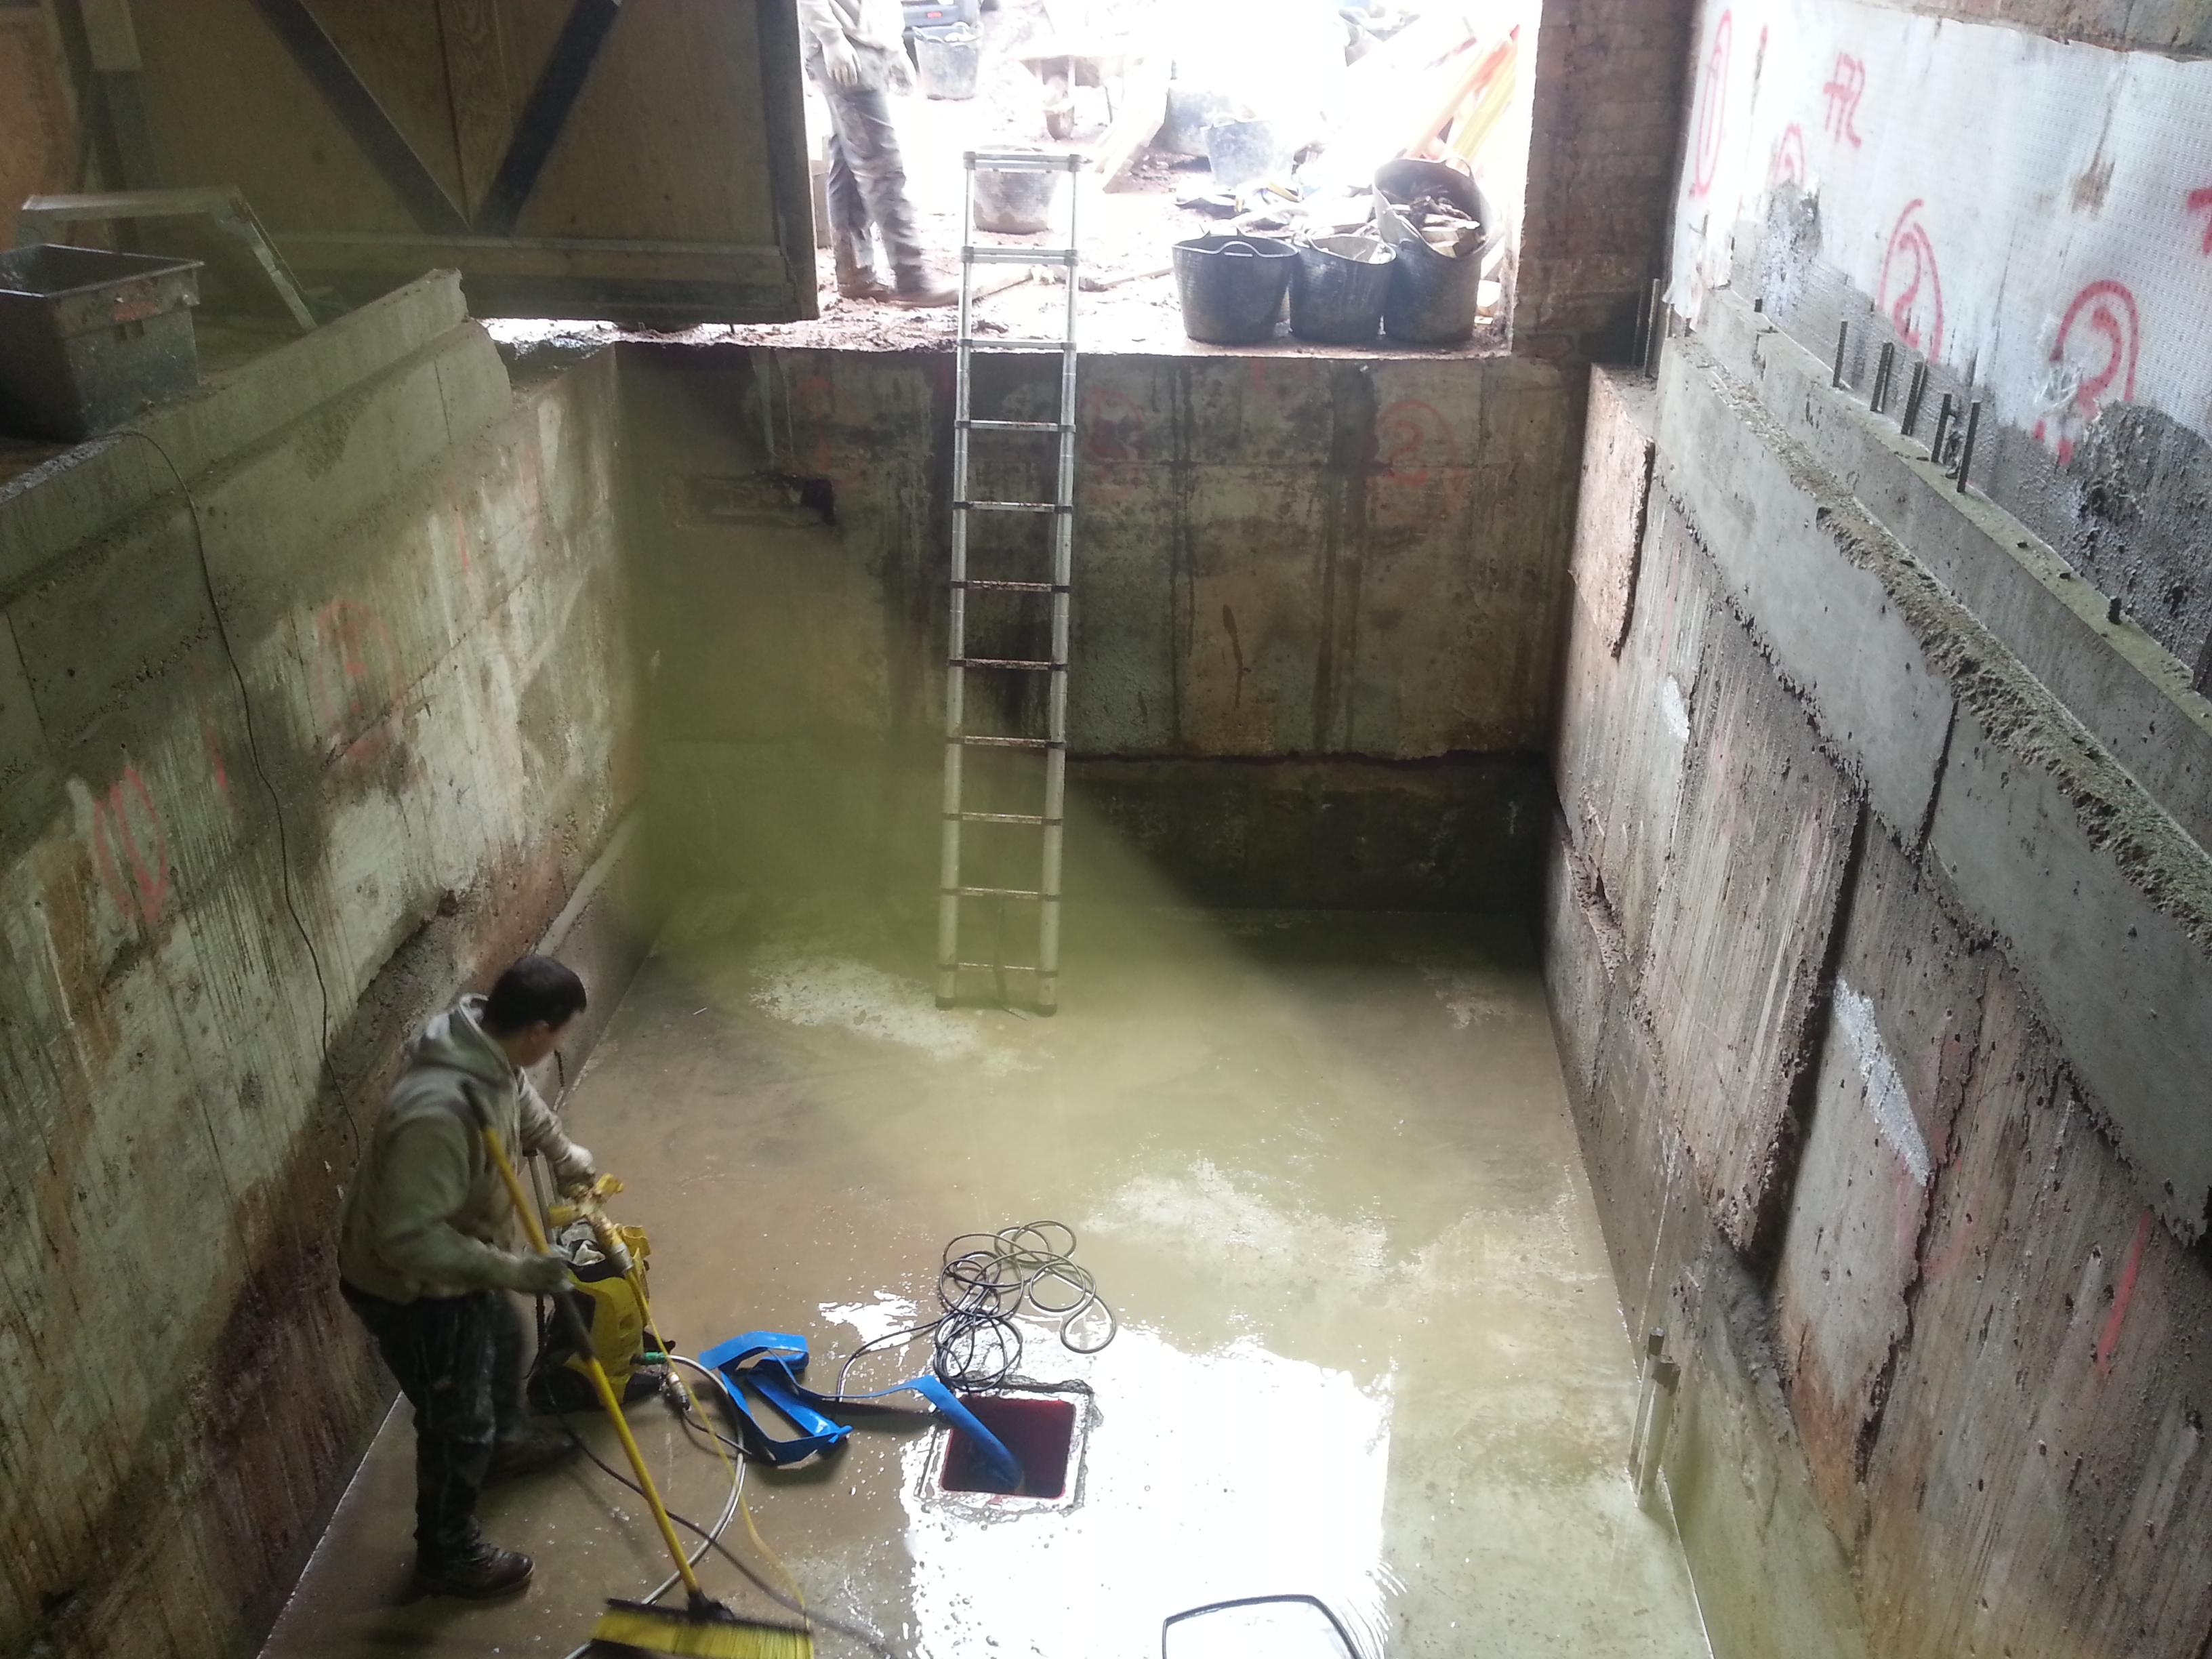 All concrete jet washed and cleaned to allow cementitious slurries to be applied